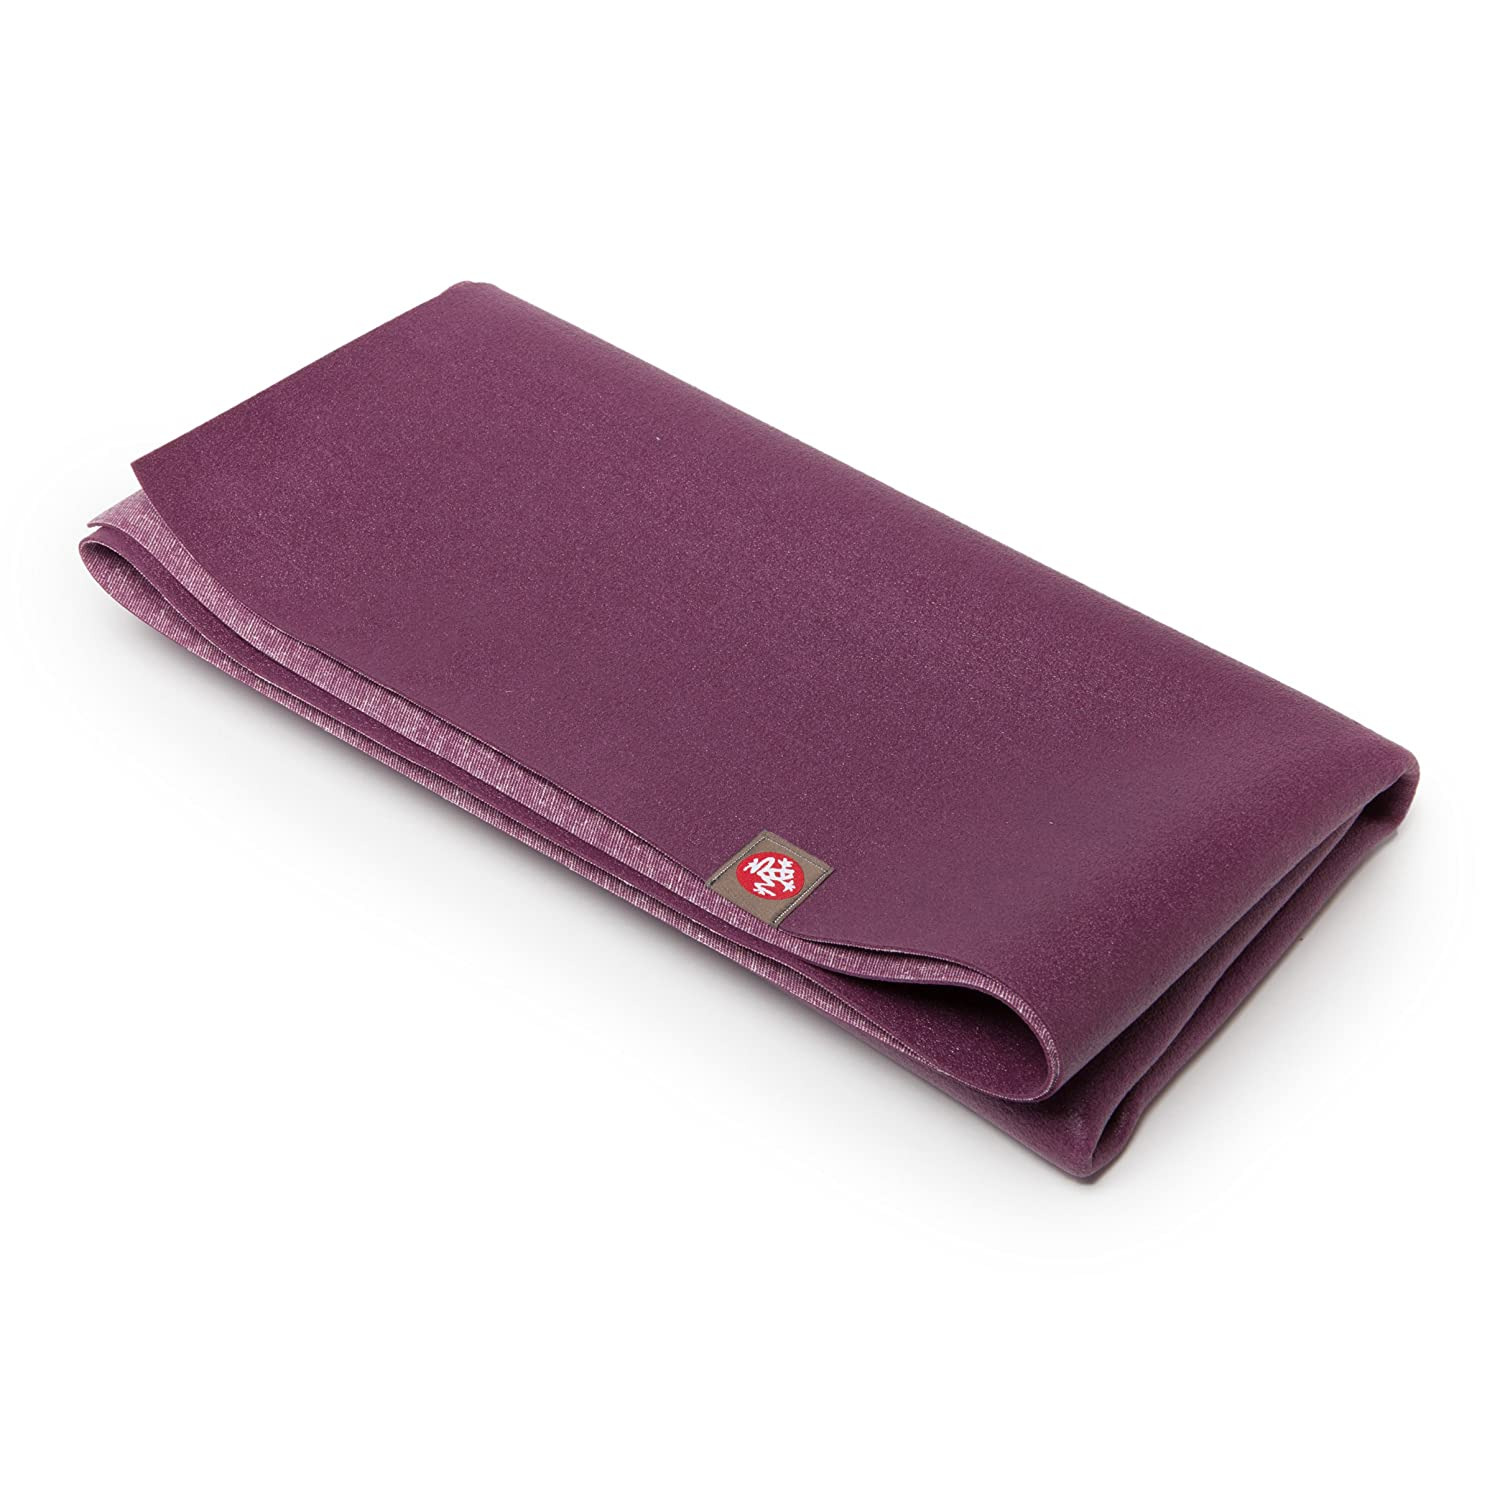 Amazon.com: TAPETE para YOGA de MANDUKA modelo eKO SUPERLITE TRAVEL MAT: Health & Personal Care